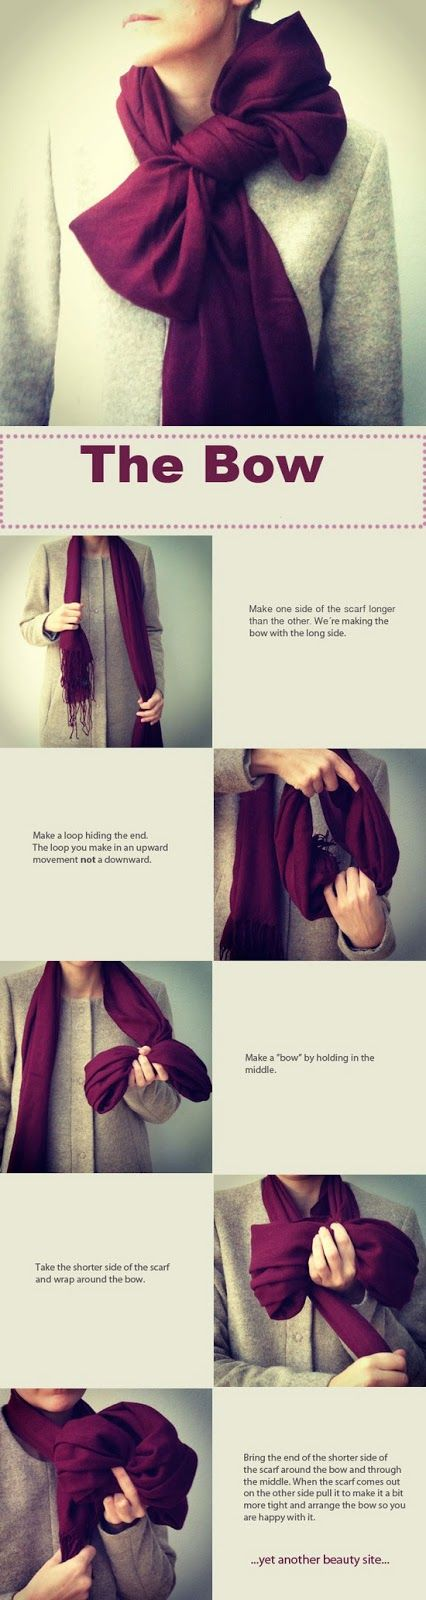 Learn how to make a bow of scarf:-  For making bow of scarf we have to proceed as follow. First of all make one side of the scarf longer than the other. We are making the bow from the long side of the scarf. Make a loop hiding the end. The loop you make must be in an upward movement not a downward.